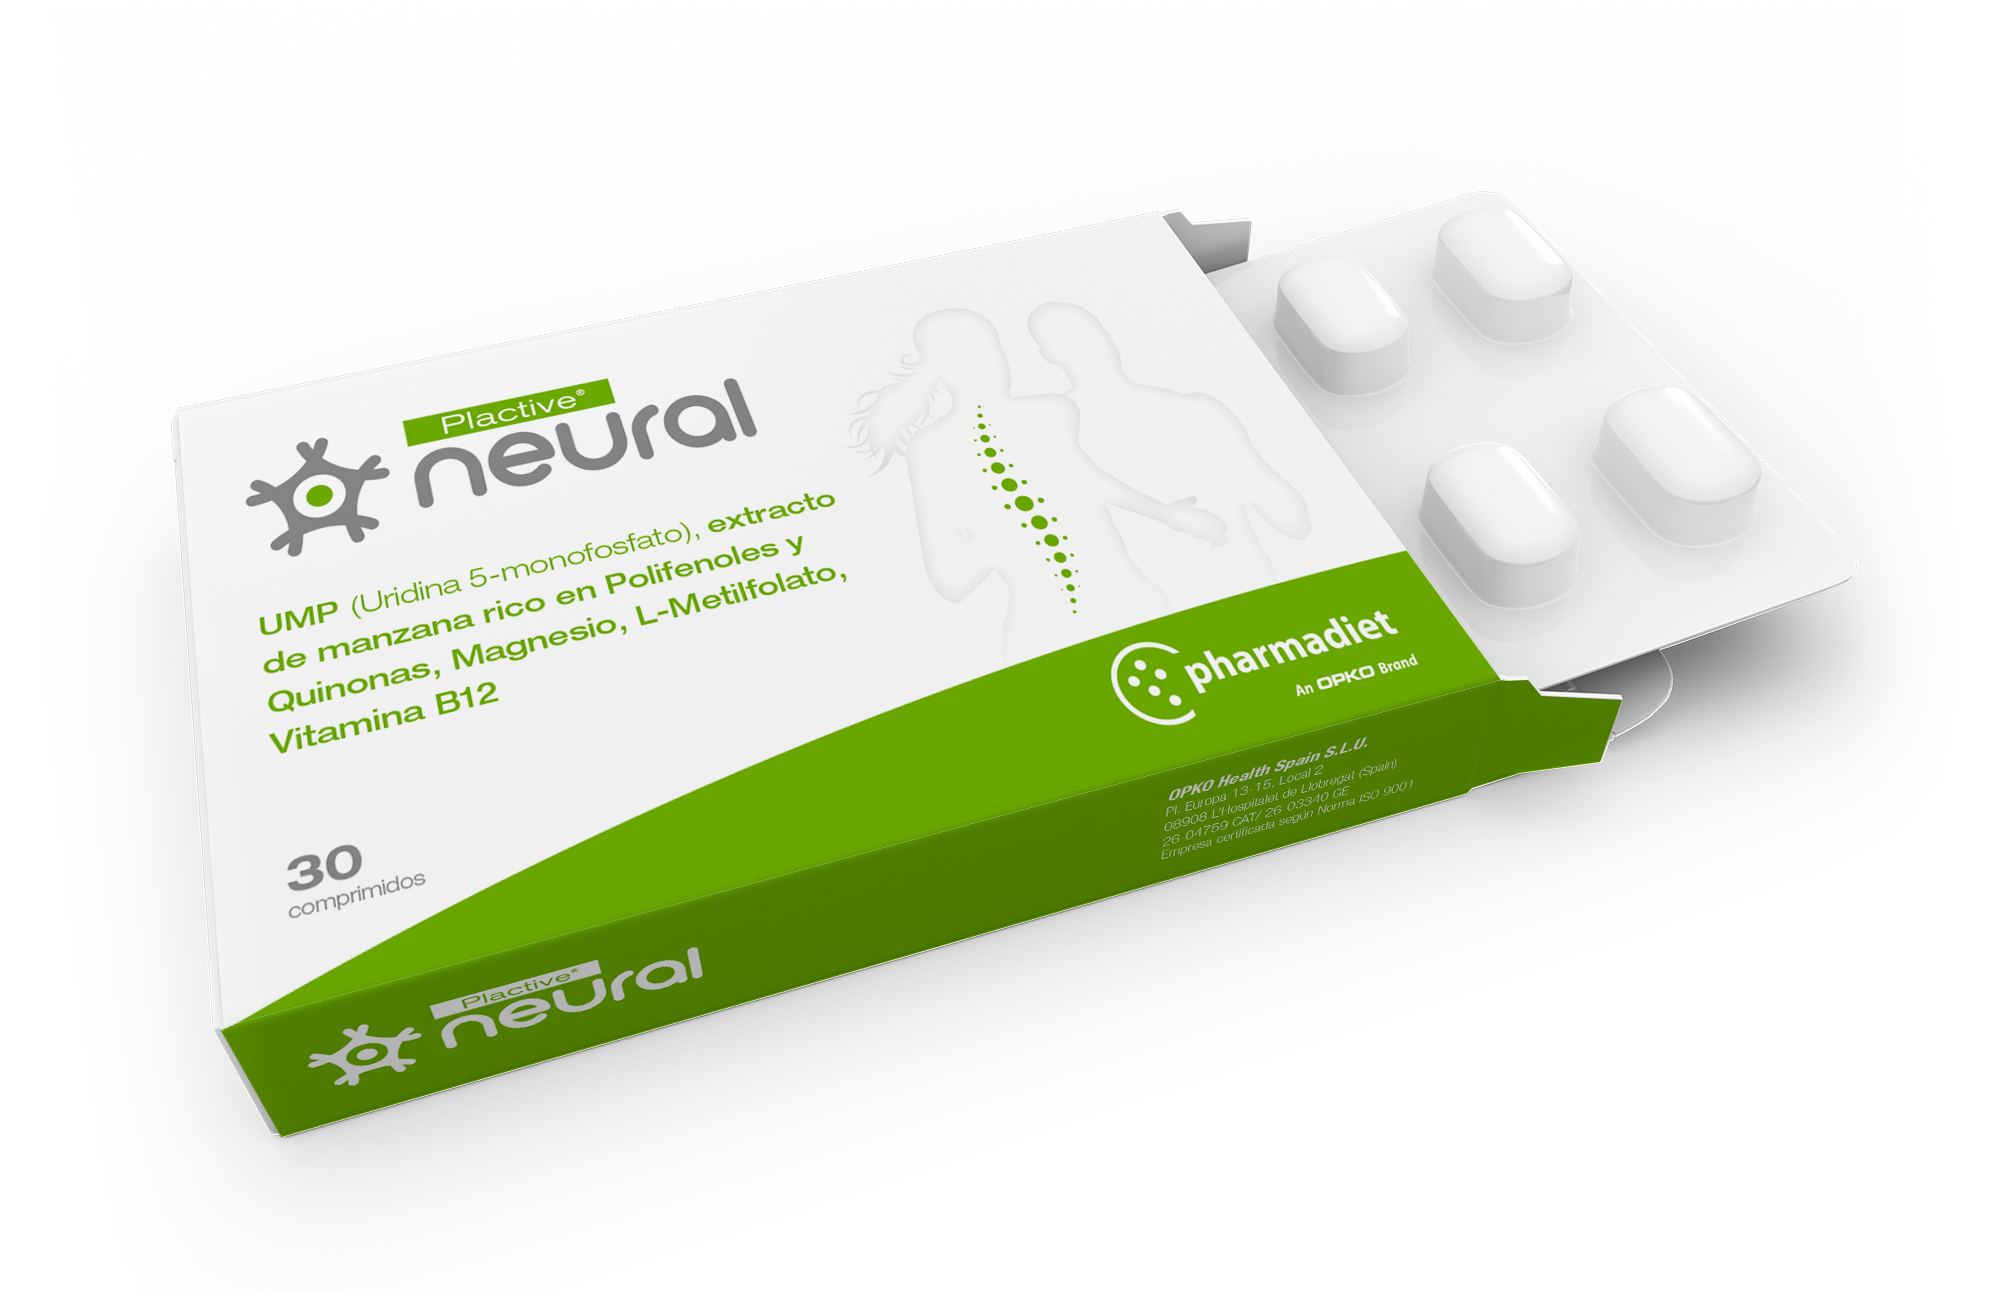 neural_packaging_3D_03